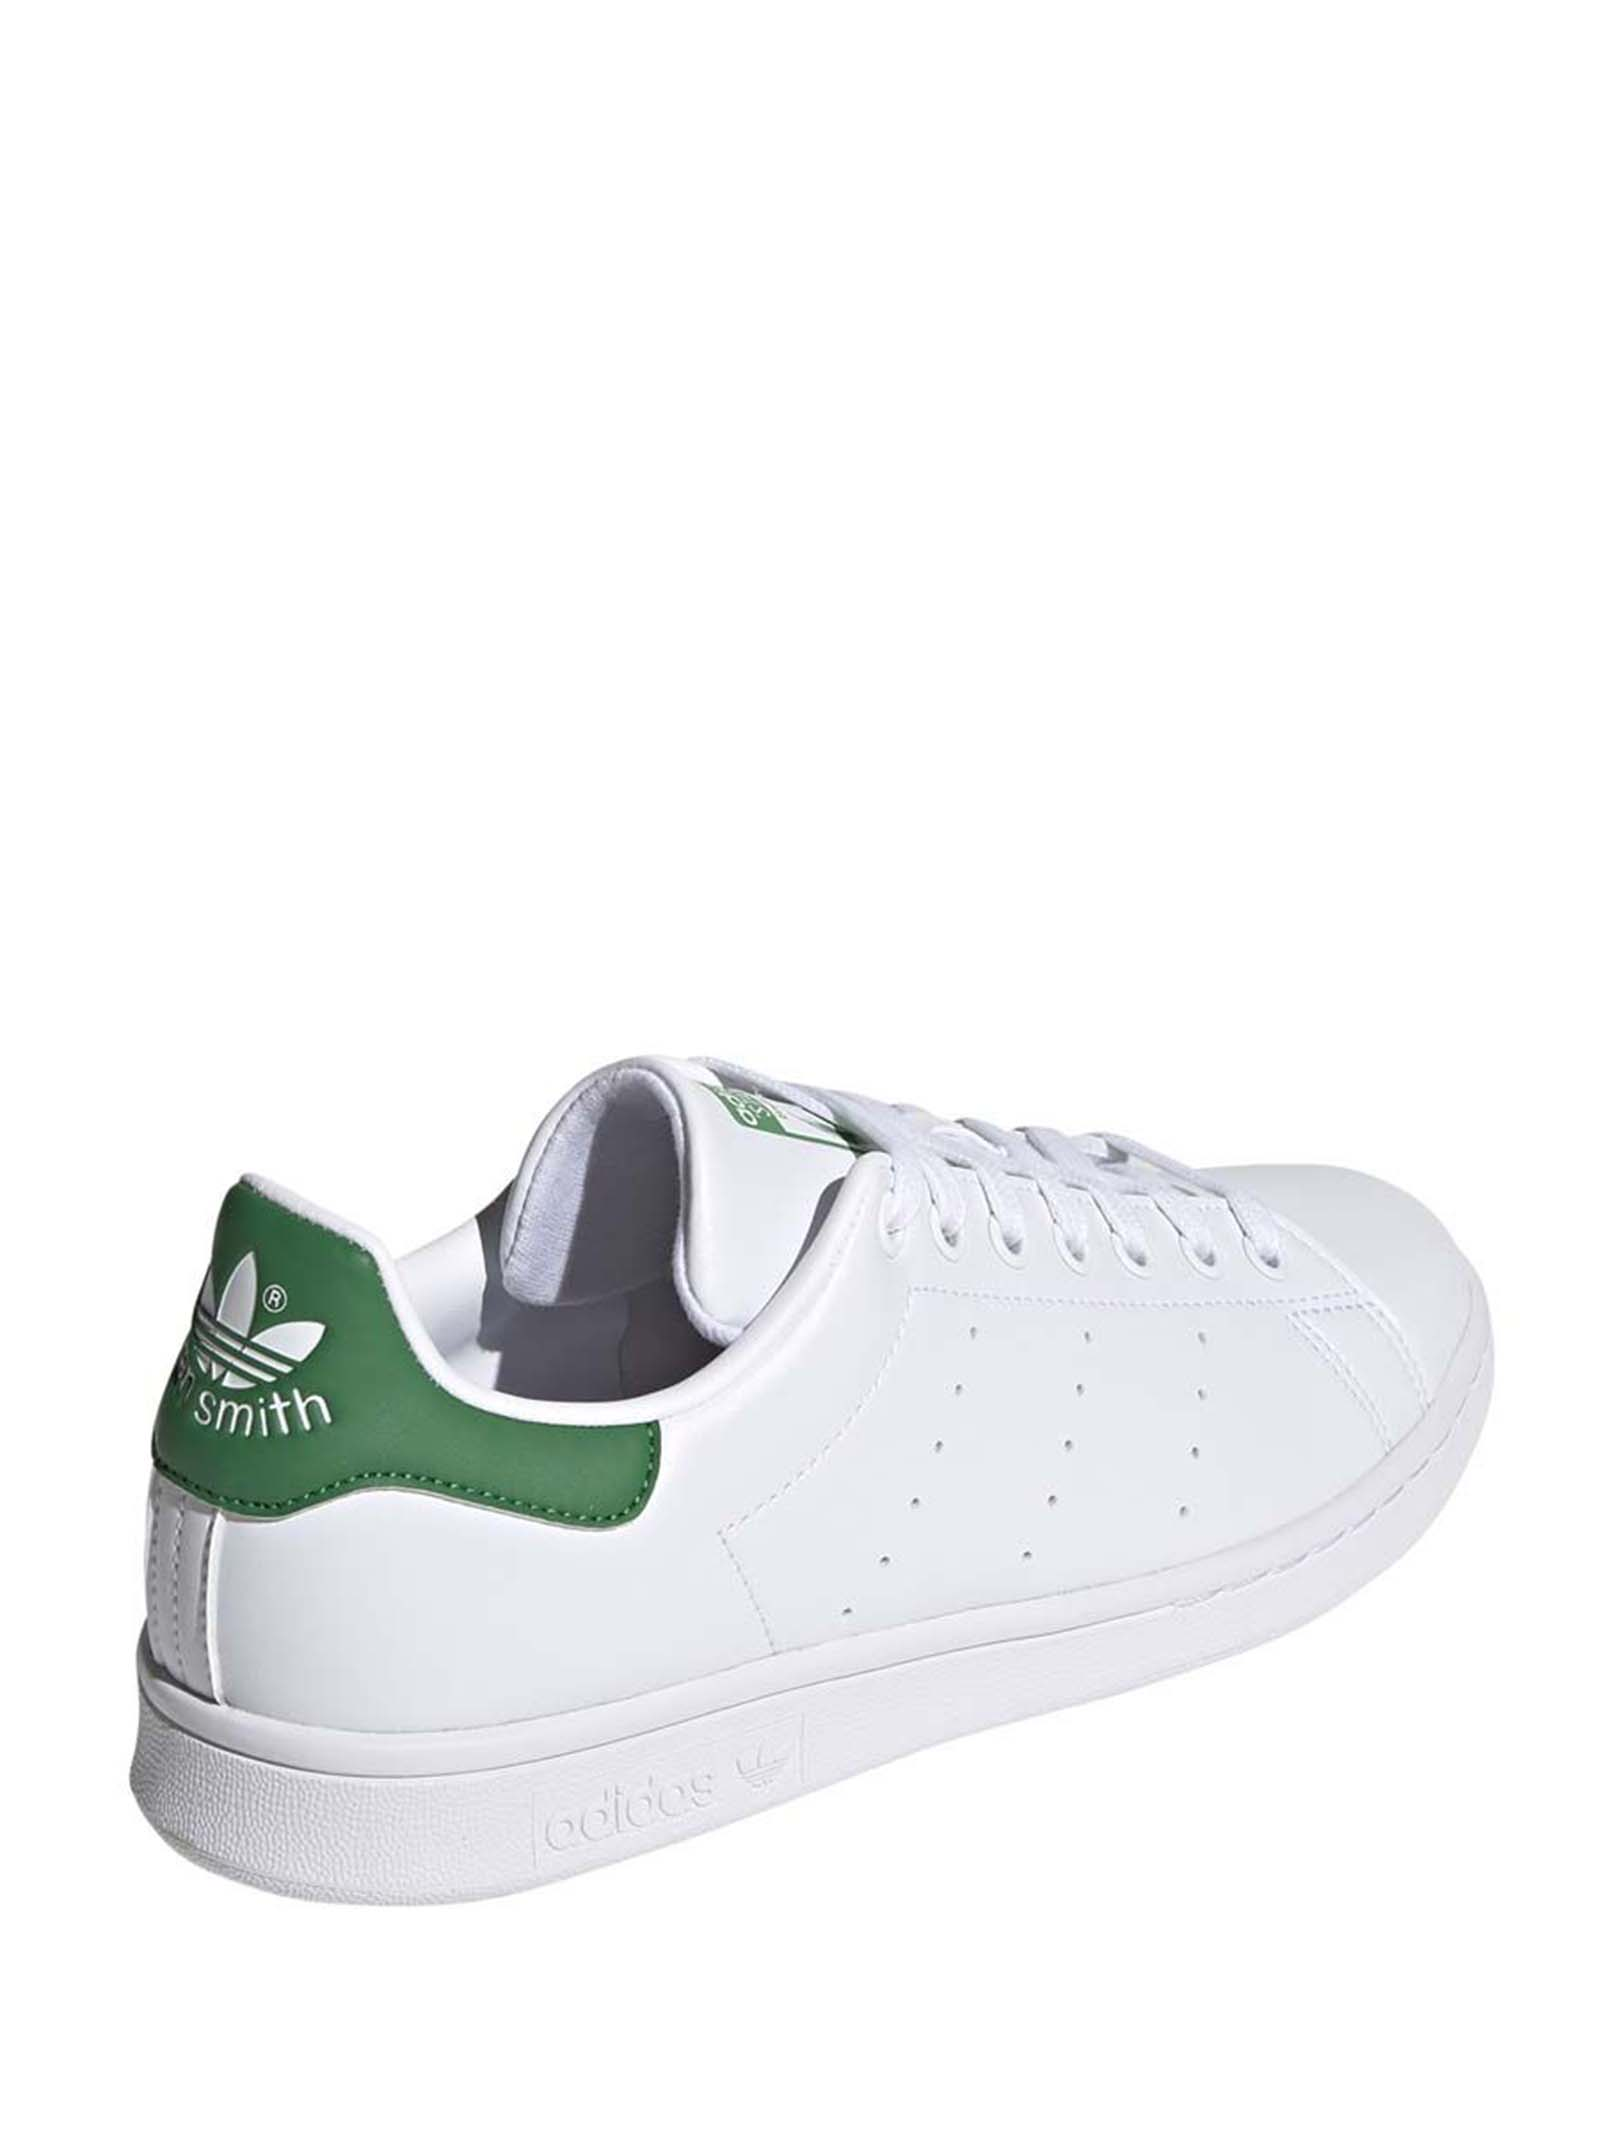 Calzature Donna Sneakers Stan Smith in Ecopelle Bianca e Verde FX7519 Adidas | Sneakers | STAN SMITH JFX7519